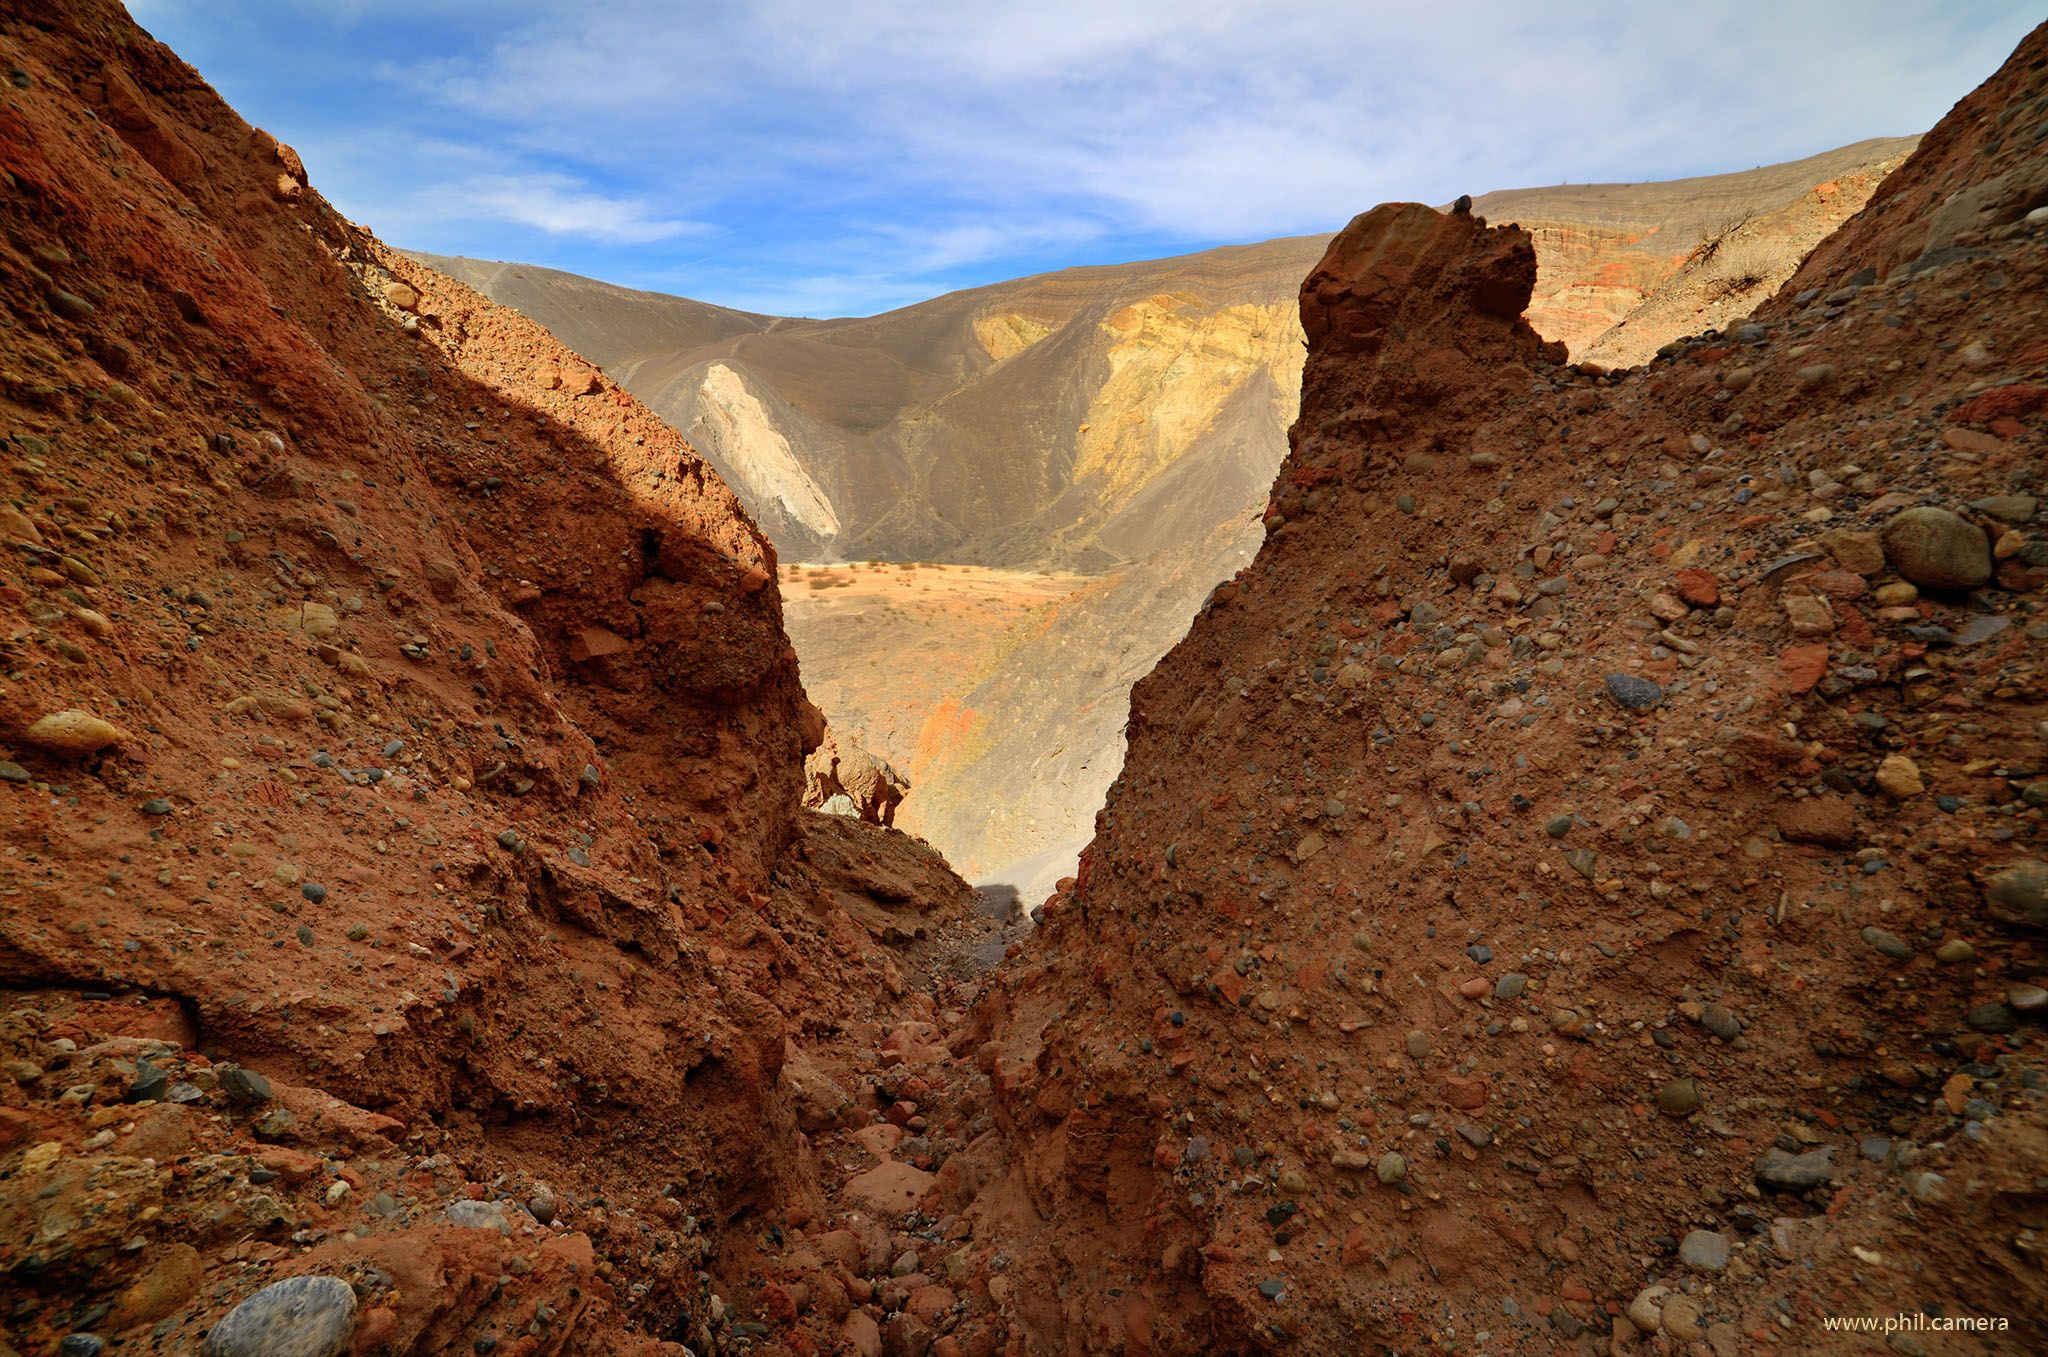 I climbed around the slot canyons inside Ubehebe Crater in Death Valley CA recently. What a cool place. [oc][20481357] #reddit